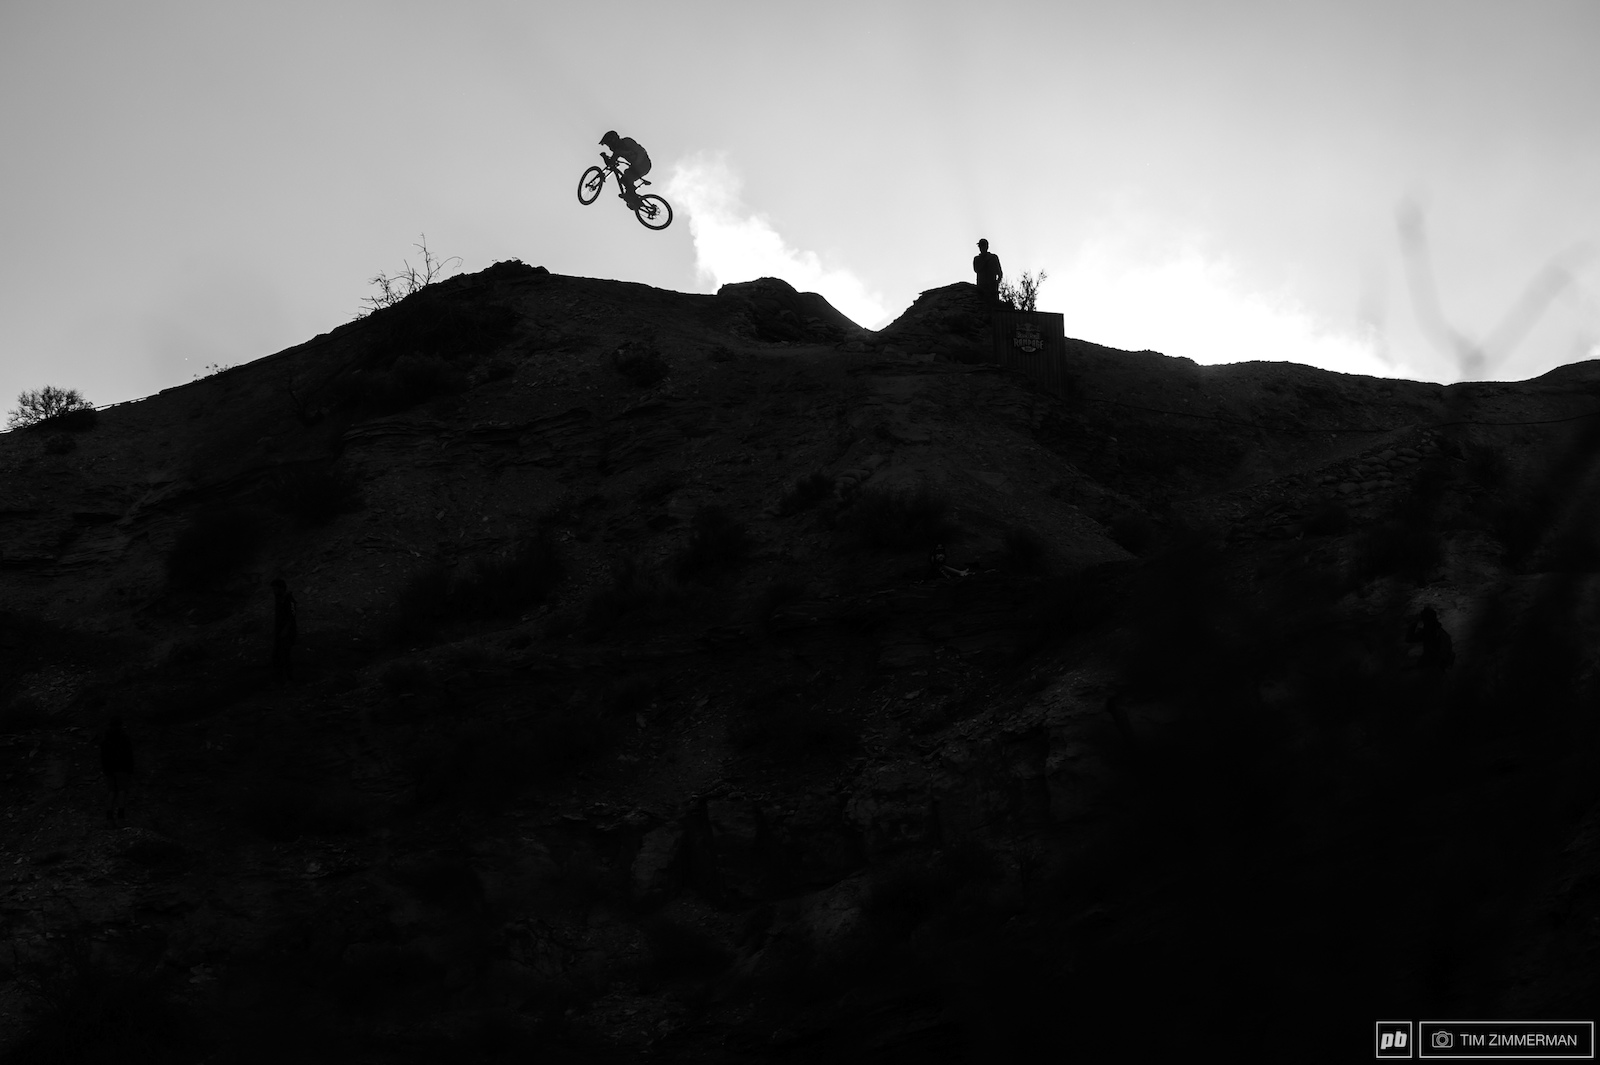 Kurt Sorge was one of the first riders at the top of the mountain today and the first to flow the ridgeline jumps.